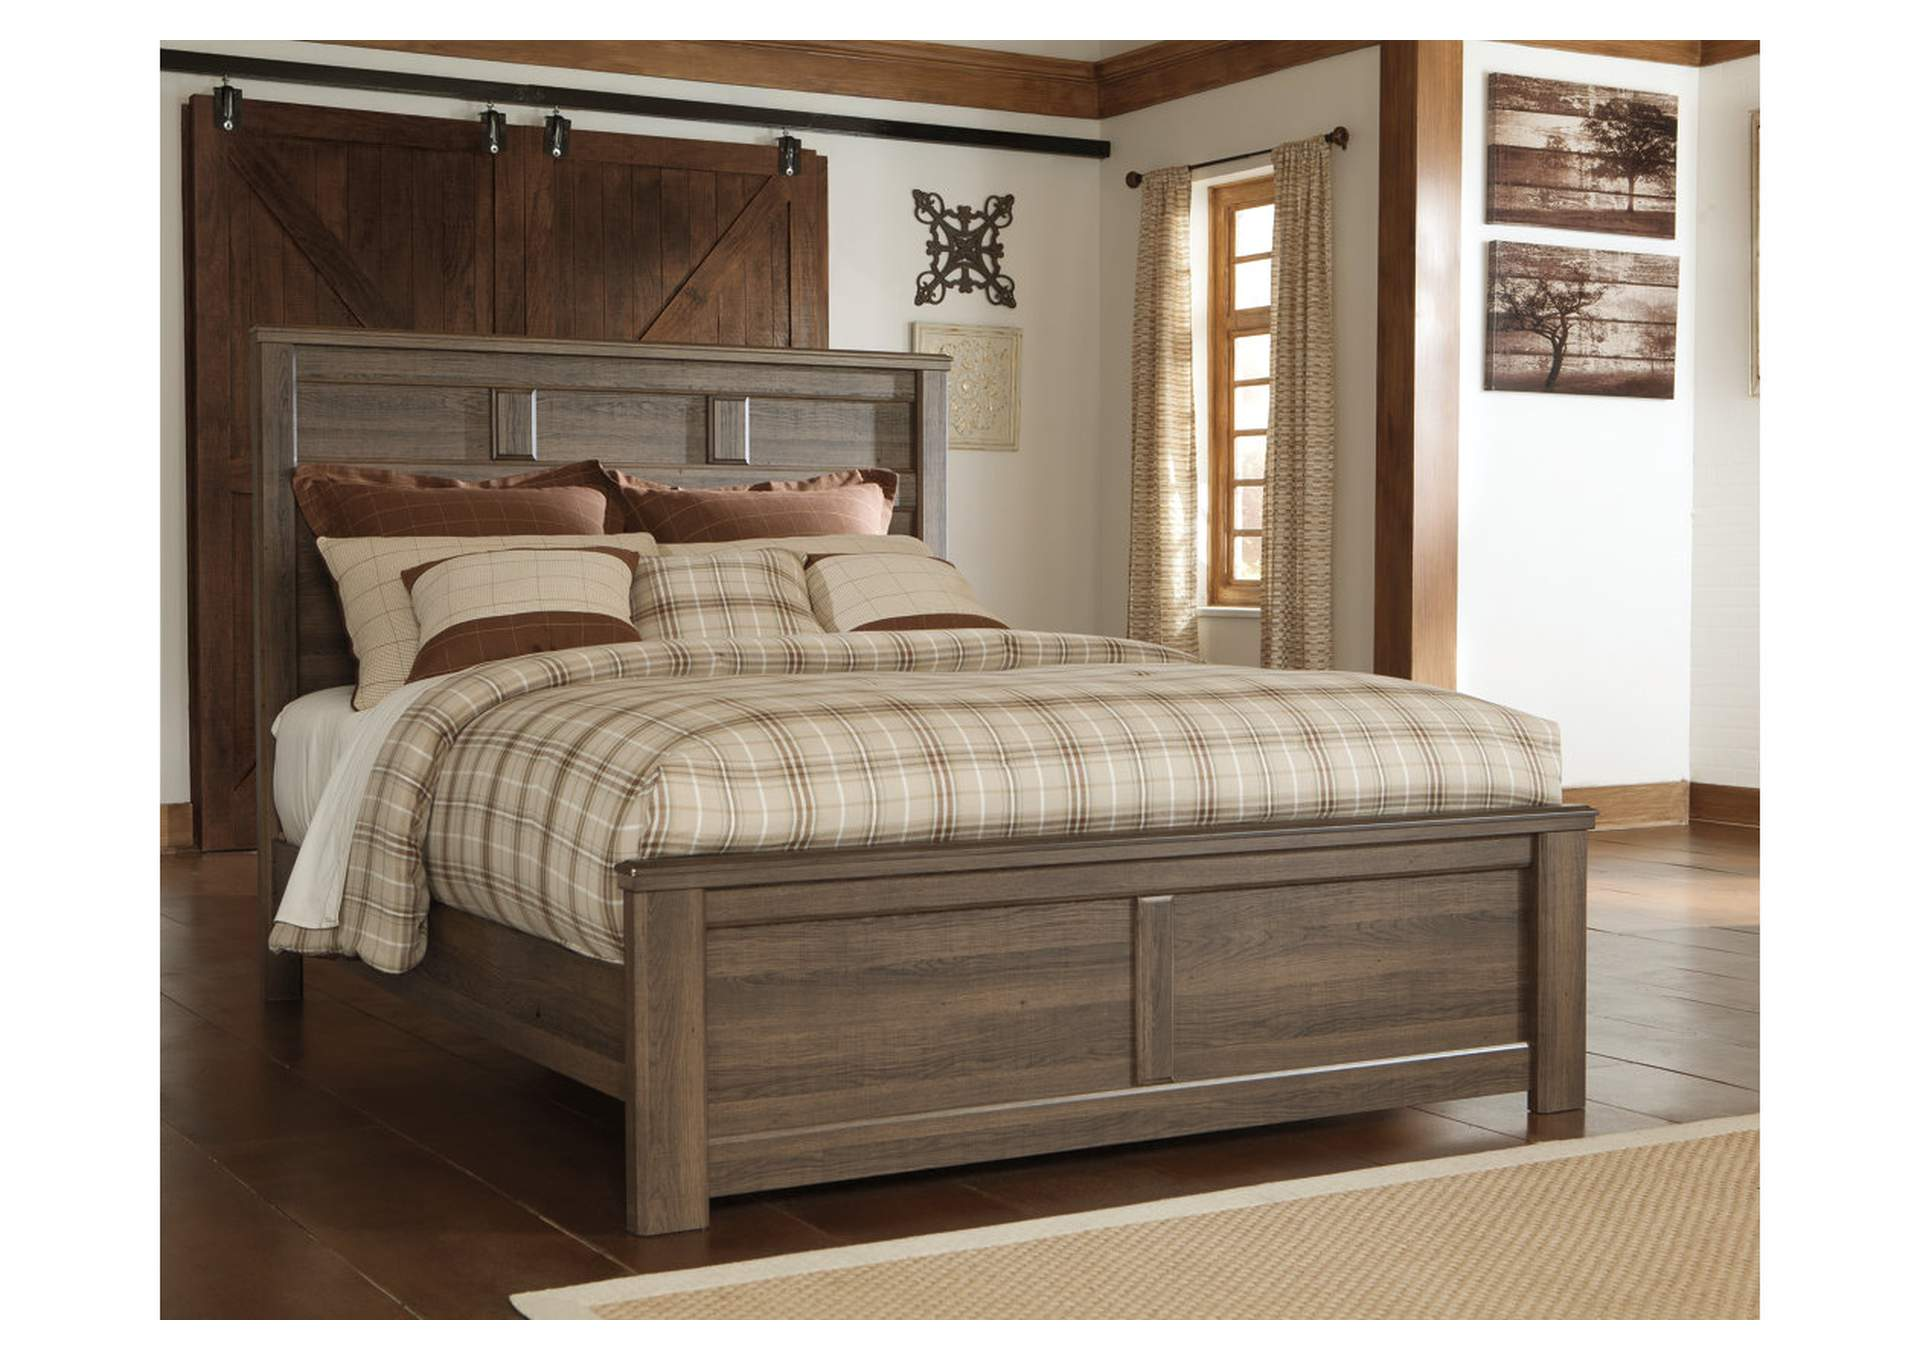 Juararo California King Panel Bed,ABF Signature Design by Ashley